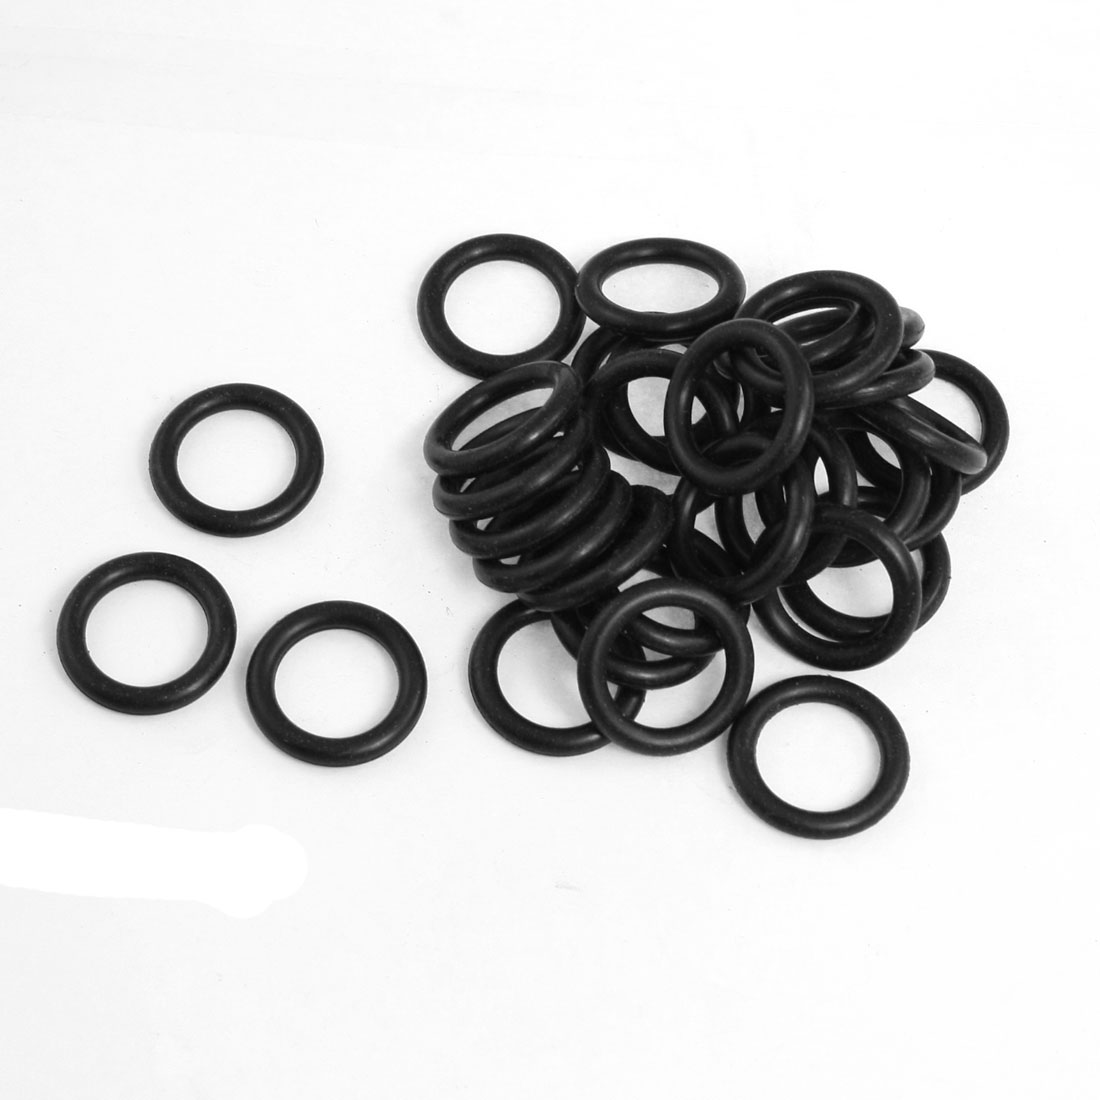 50 Pcs 22mm x 3.5mm x 15mm Mechanical Black NBR O Rings Oil Seal Washers